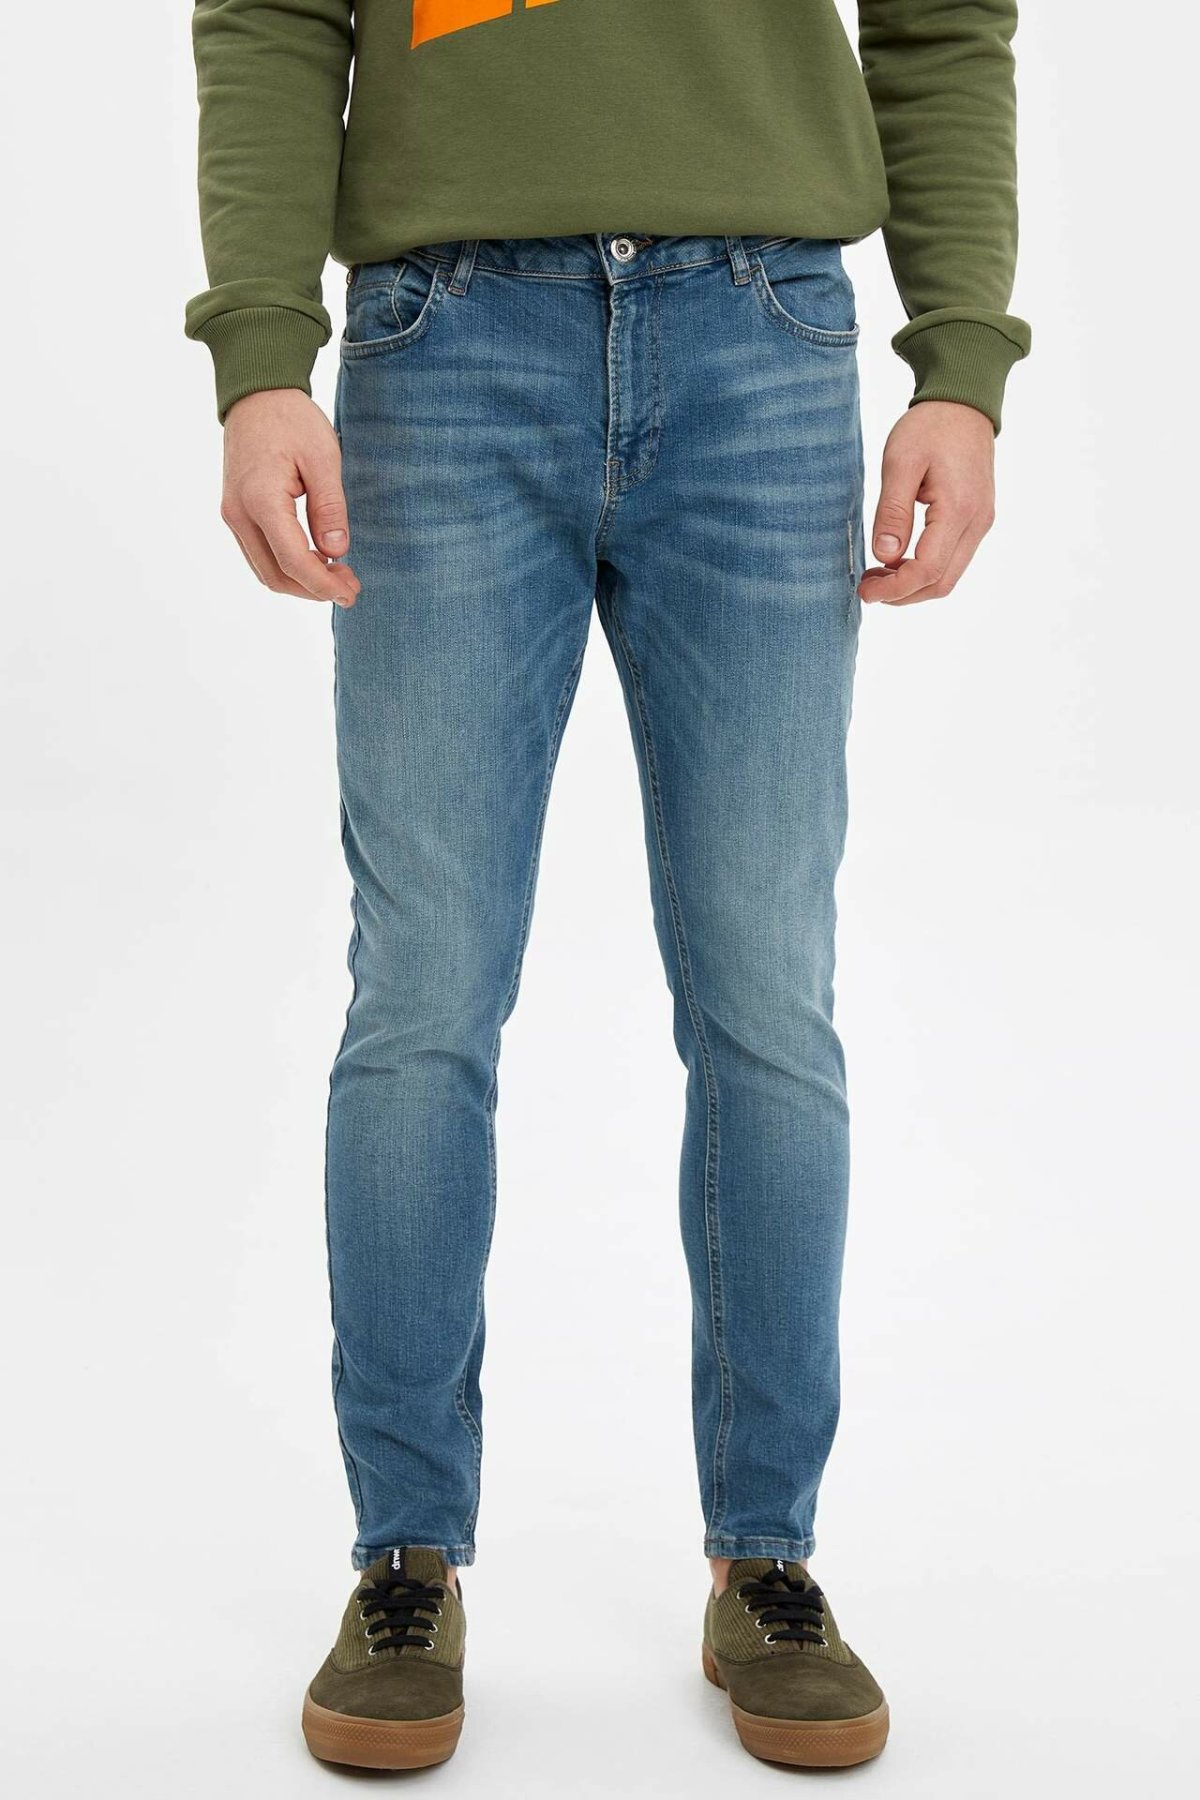 DeFacto Man Spring Washed Blue Denim Jeans Men Casual Mid-waist Bottom Jeans Male Denim PantsTrousers-M1258AZ19AU